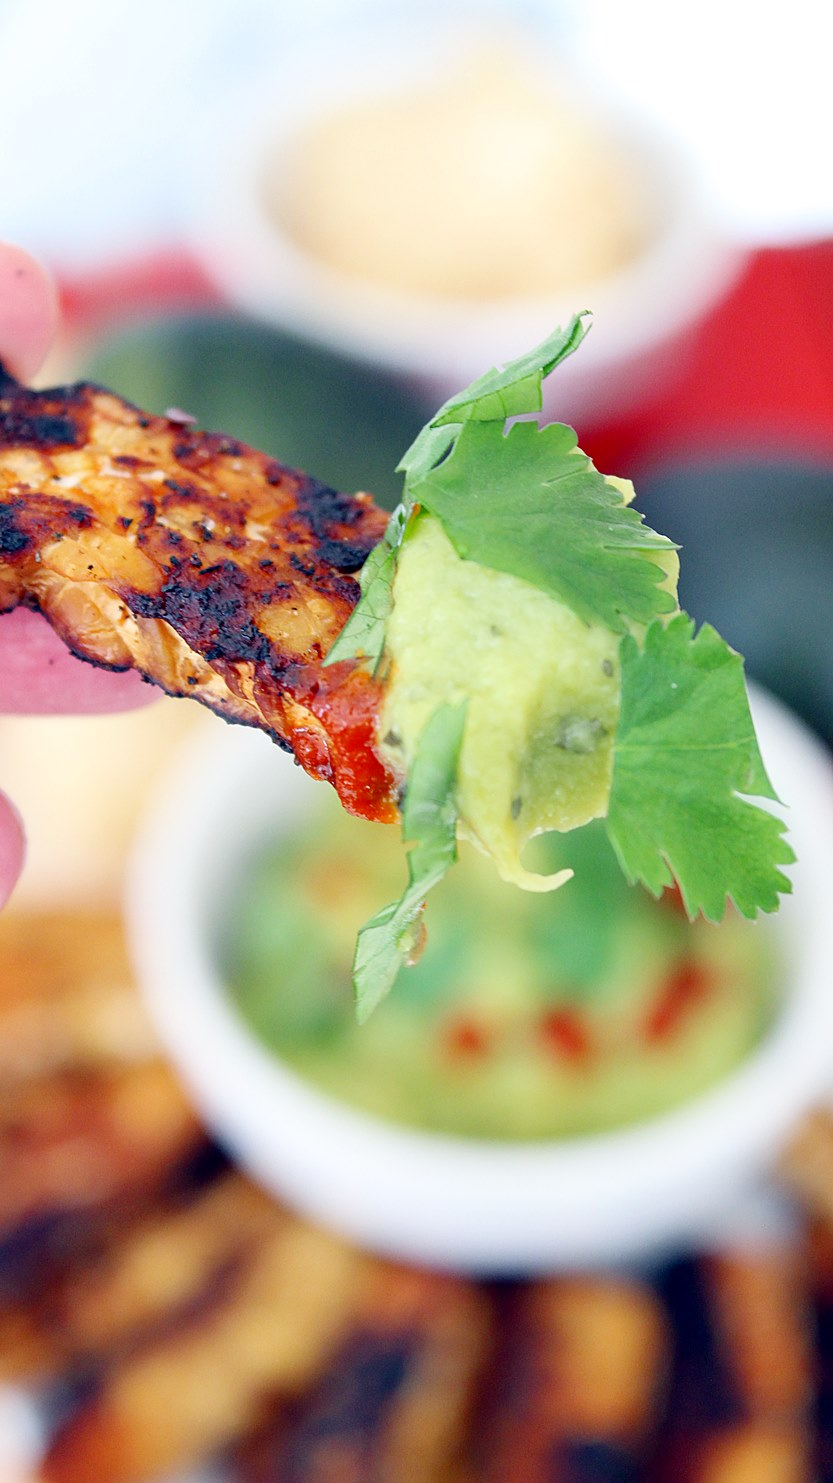 Tempeh-Bacon-with-Guacamole-Vegan-Plant-Based-Recipe-Planted365.com